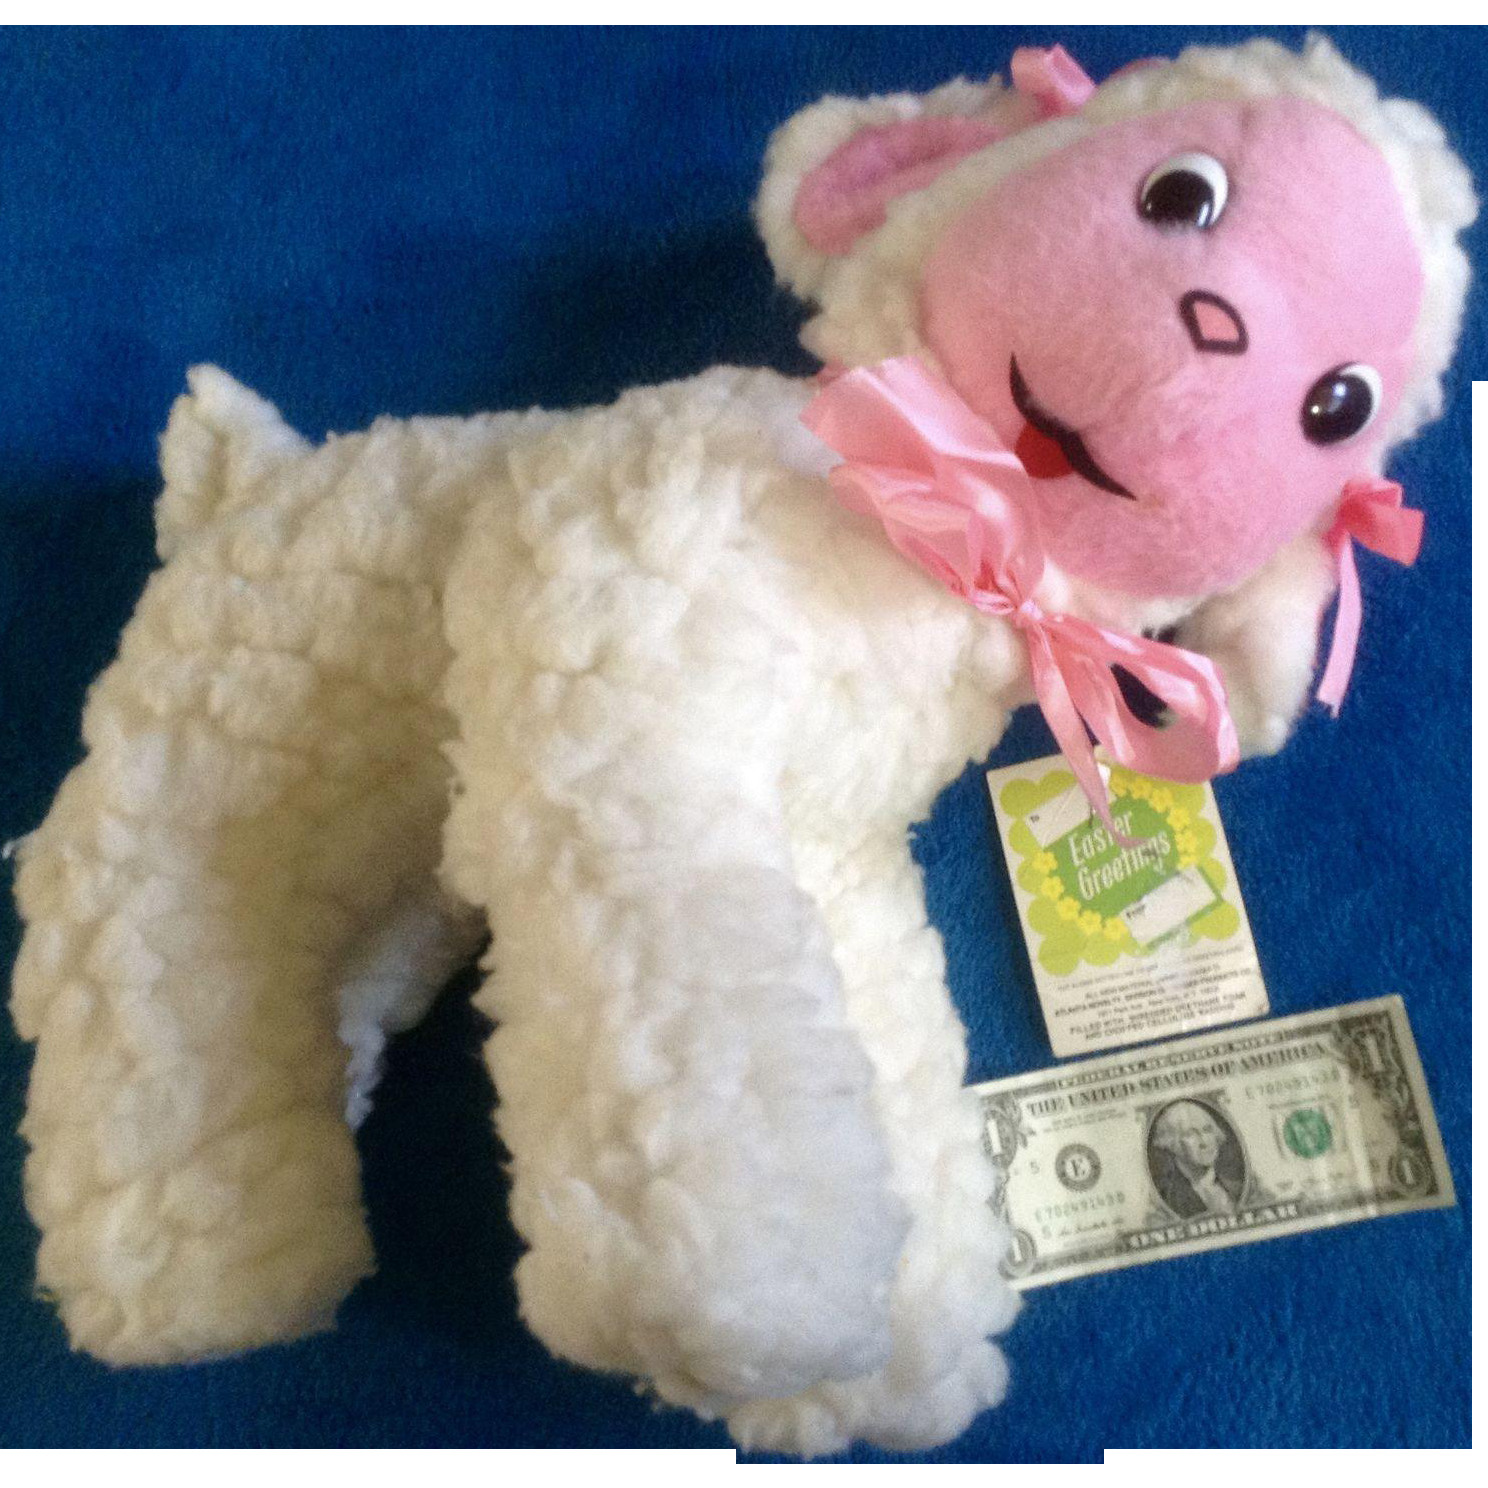 Easter Lamb Stuffed Animal  Vintage Gerber Atlanta Novelty Easter Lamb Stuffed